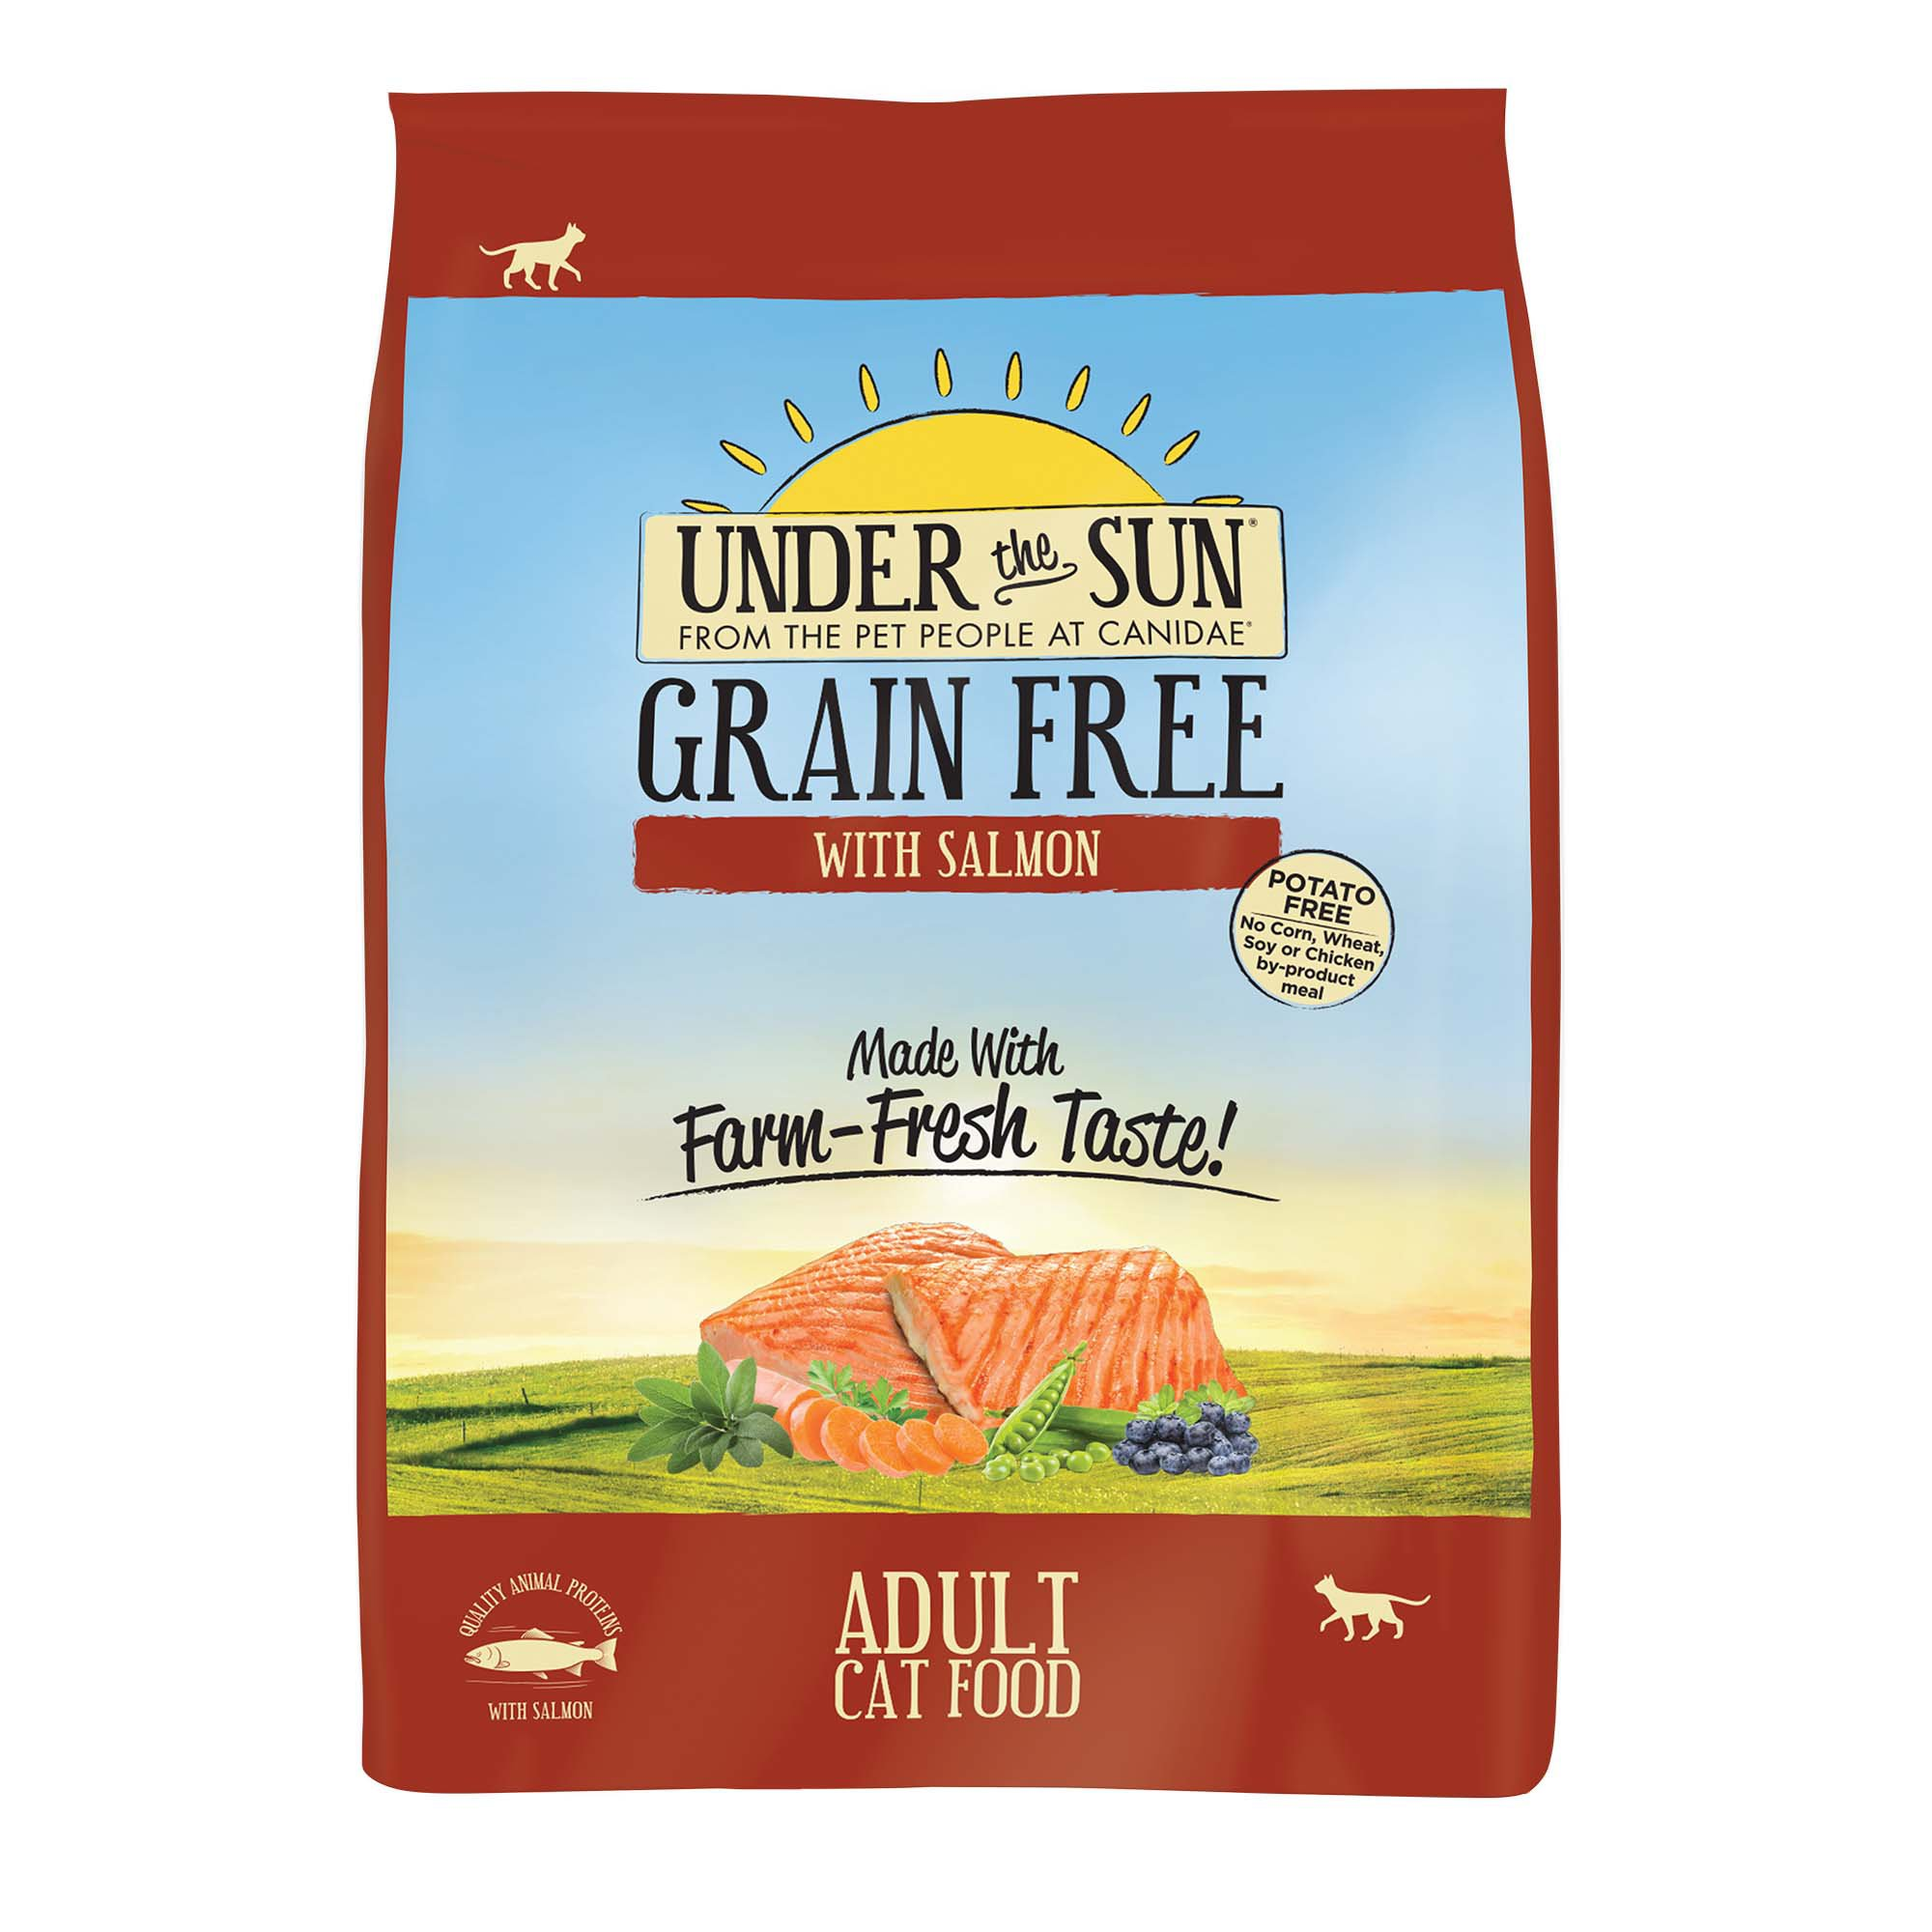 Under The Sun Grain Free Adult Cat Food Made With Fresh-Caught Salmon